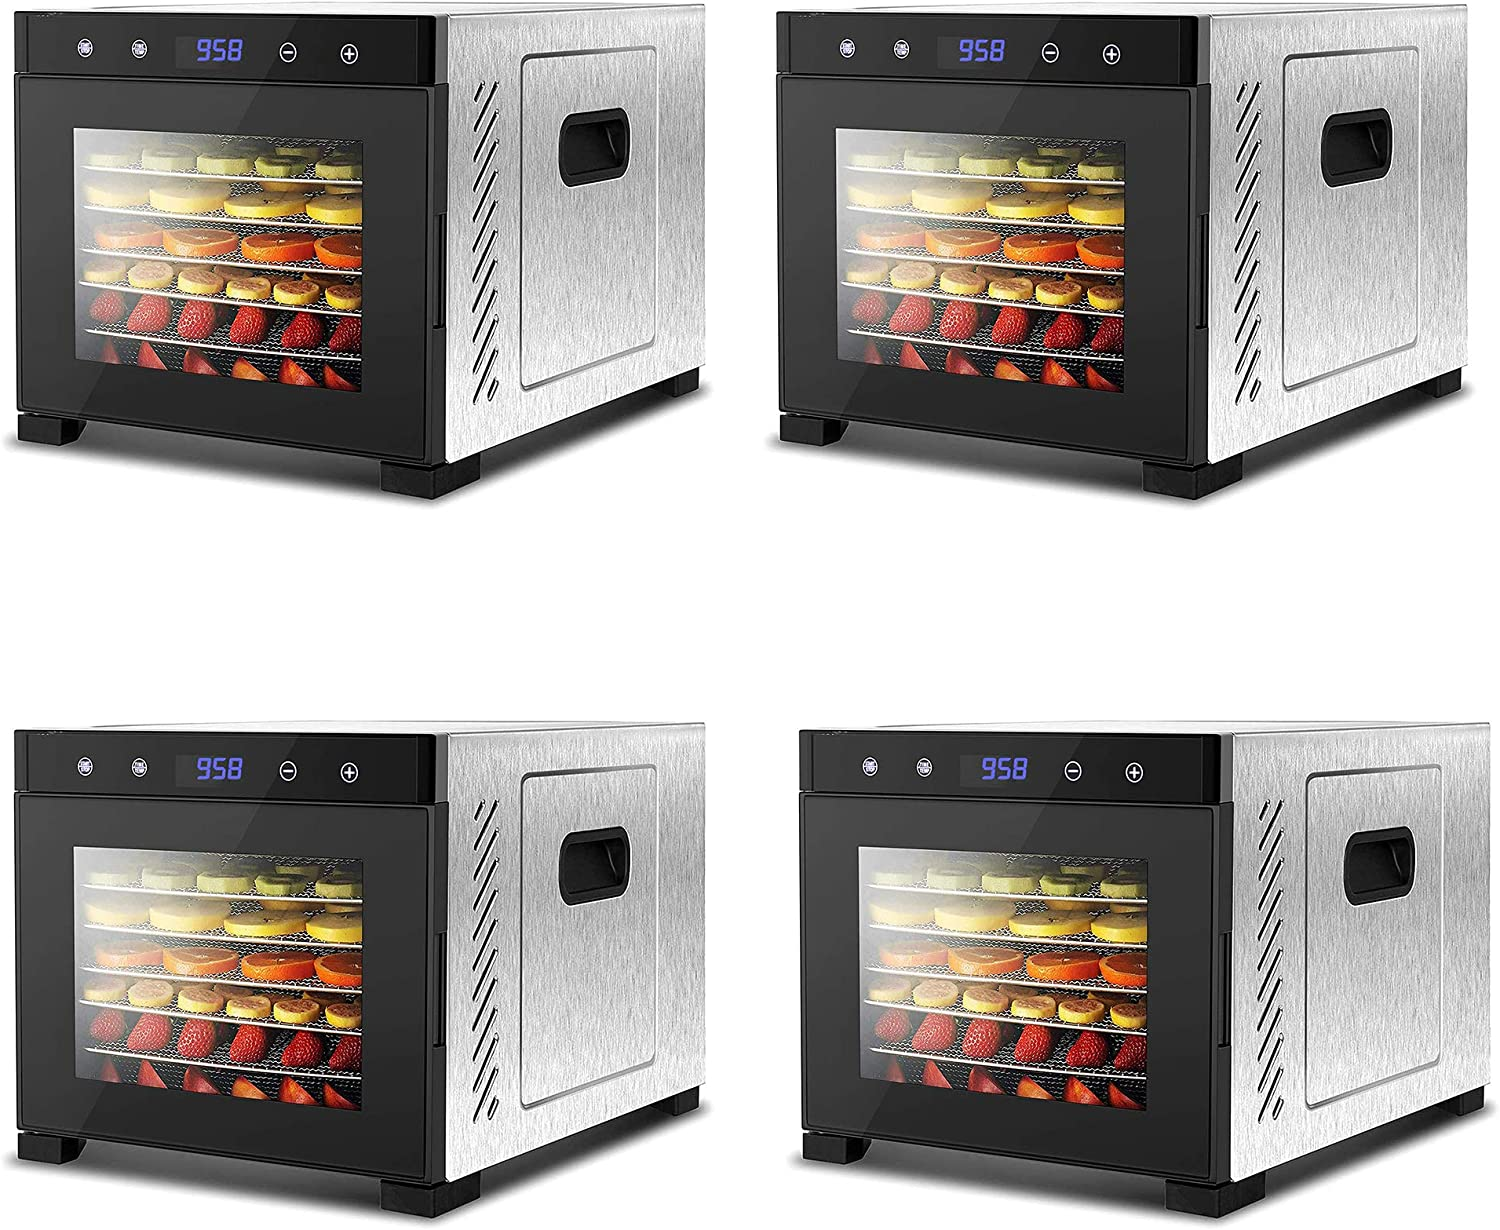 NutriChef Electric Countertop 600 Watts Multi Tier Food Dehydrator Machine with 6 Stainless Steel Trays, Digital Timer, and Temperature Control, Silver (4 Pack)